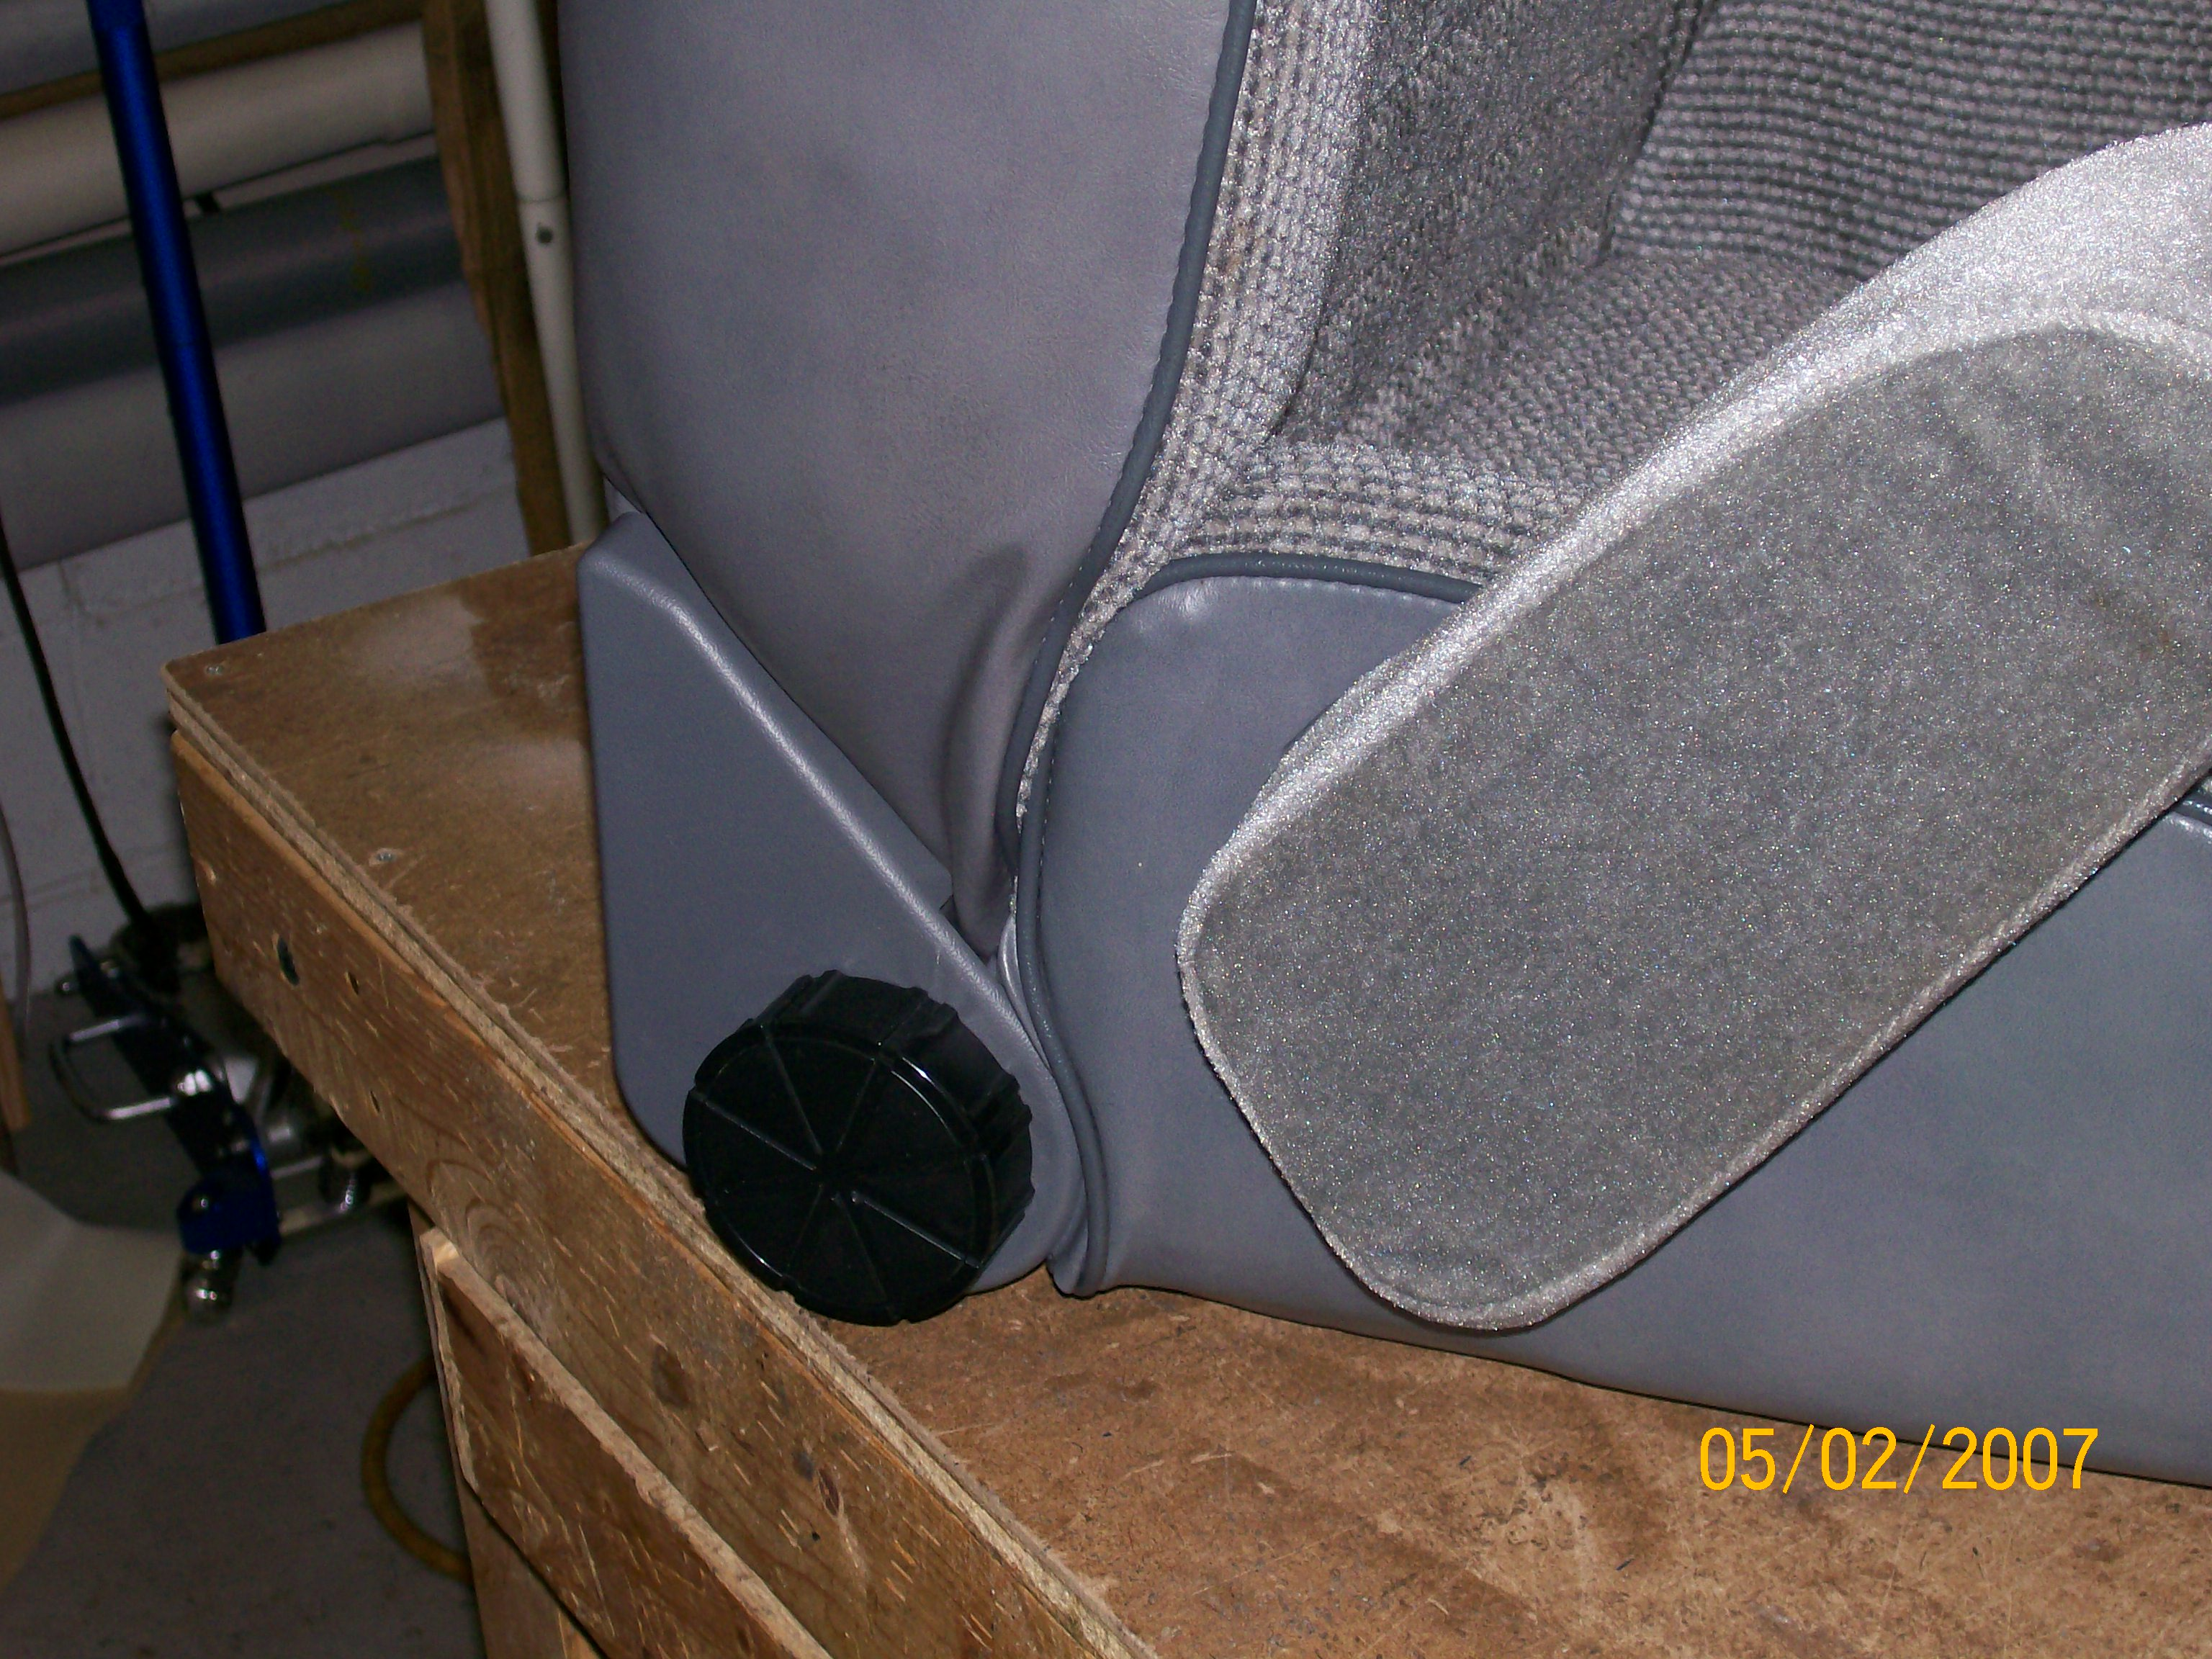 Click image for larger version  Name:Astro Seat 001.jpg Views:383 Size:1.14 MB ID:60963